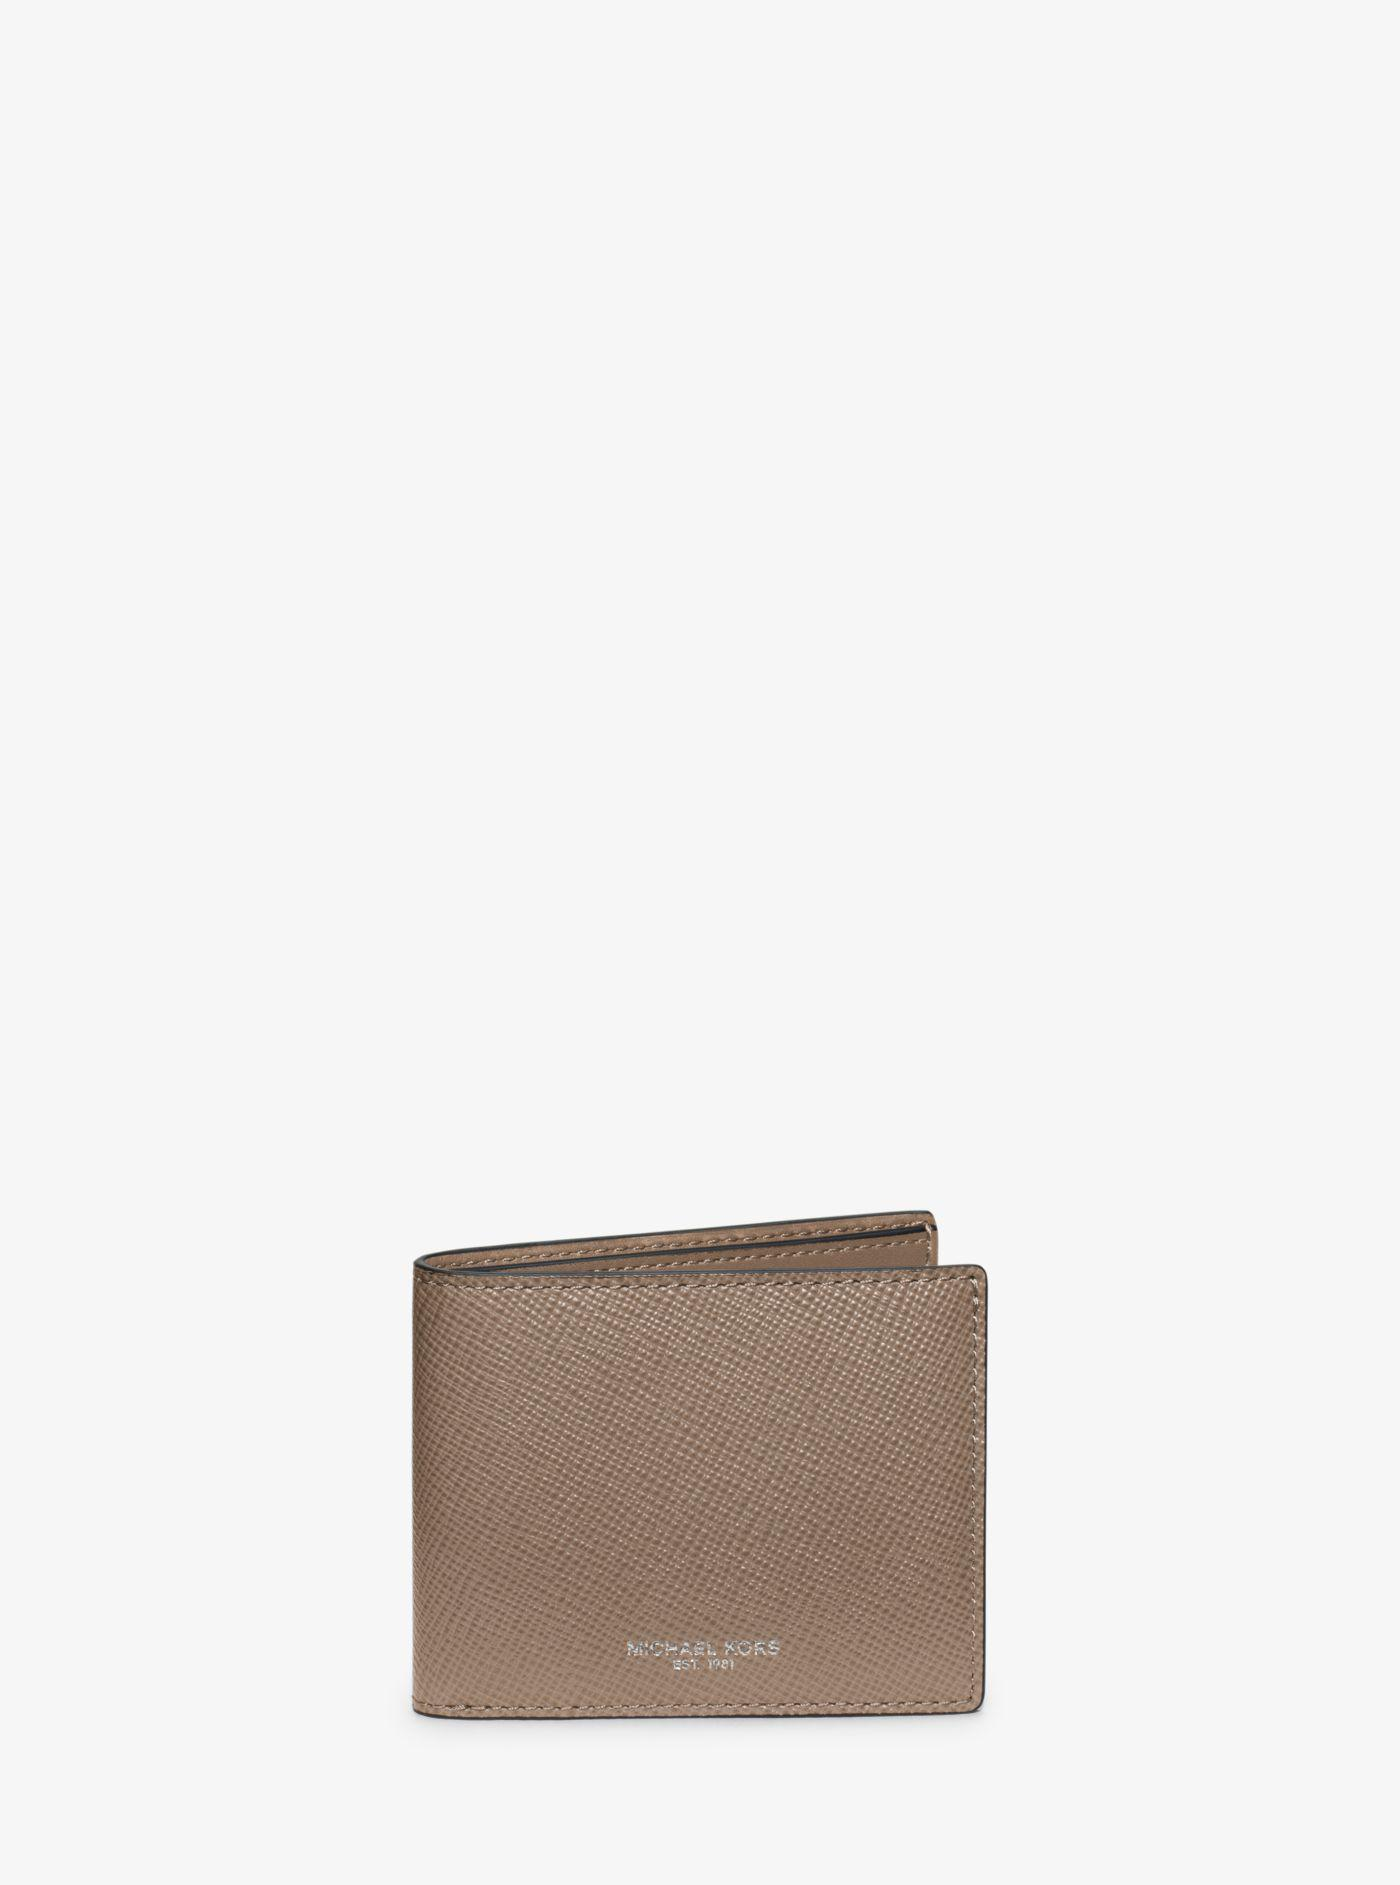 43ad6ab3b9eb Lyst - Michael Kors Harrison Leather Slim Billfold Wallet in Gray ...